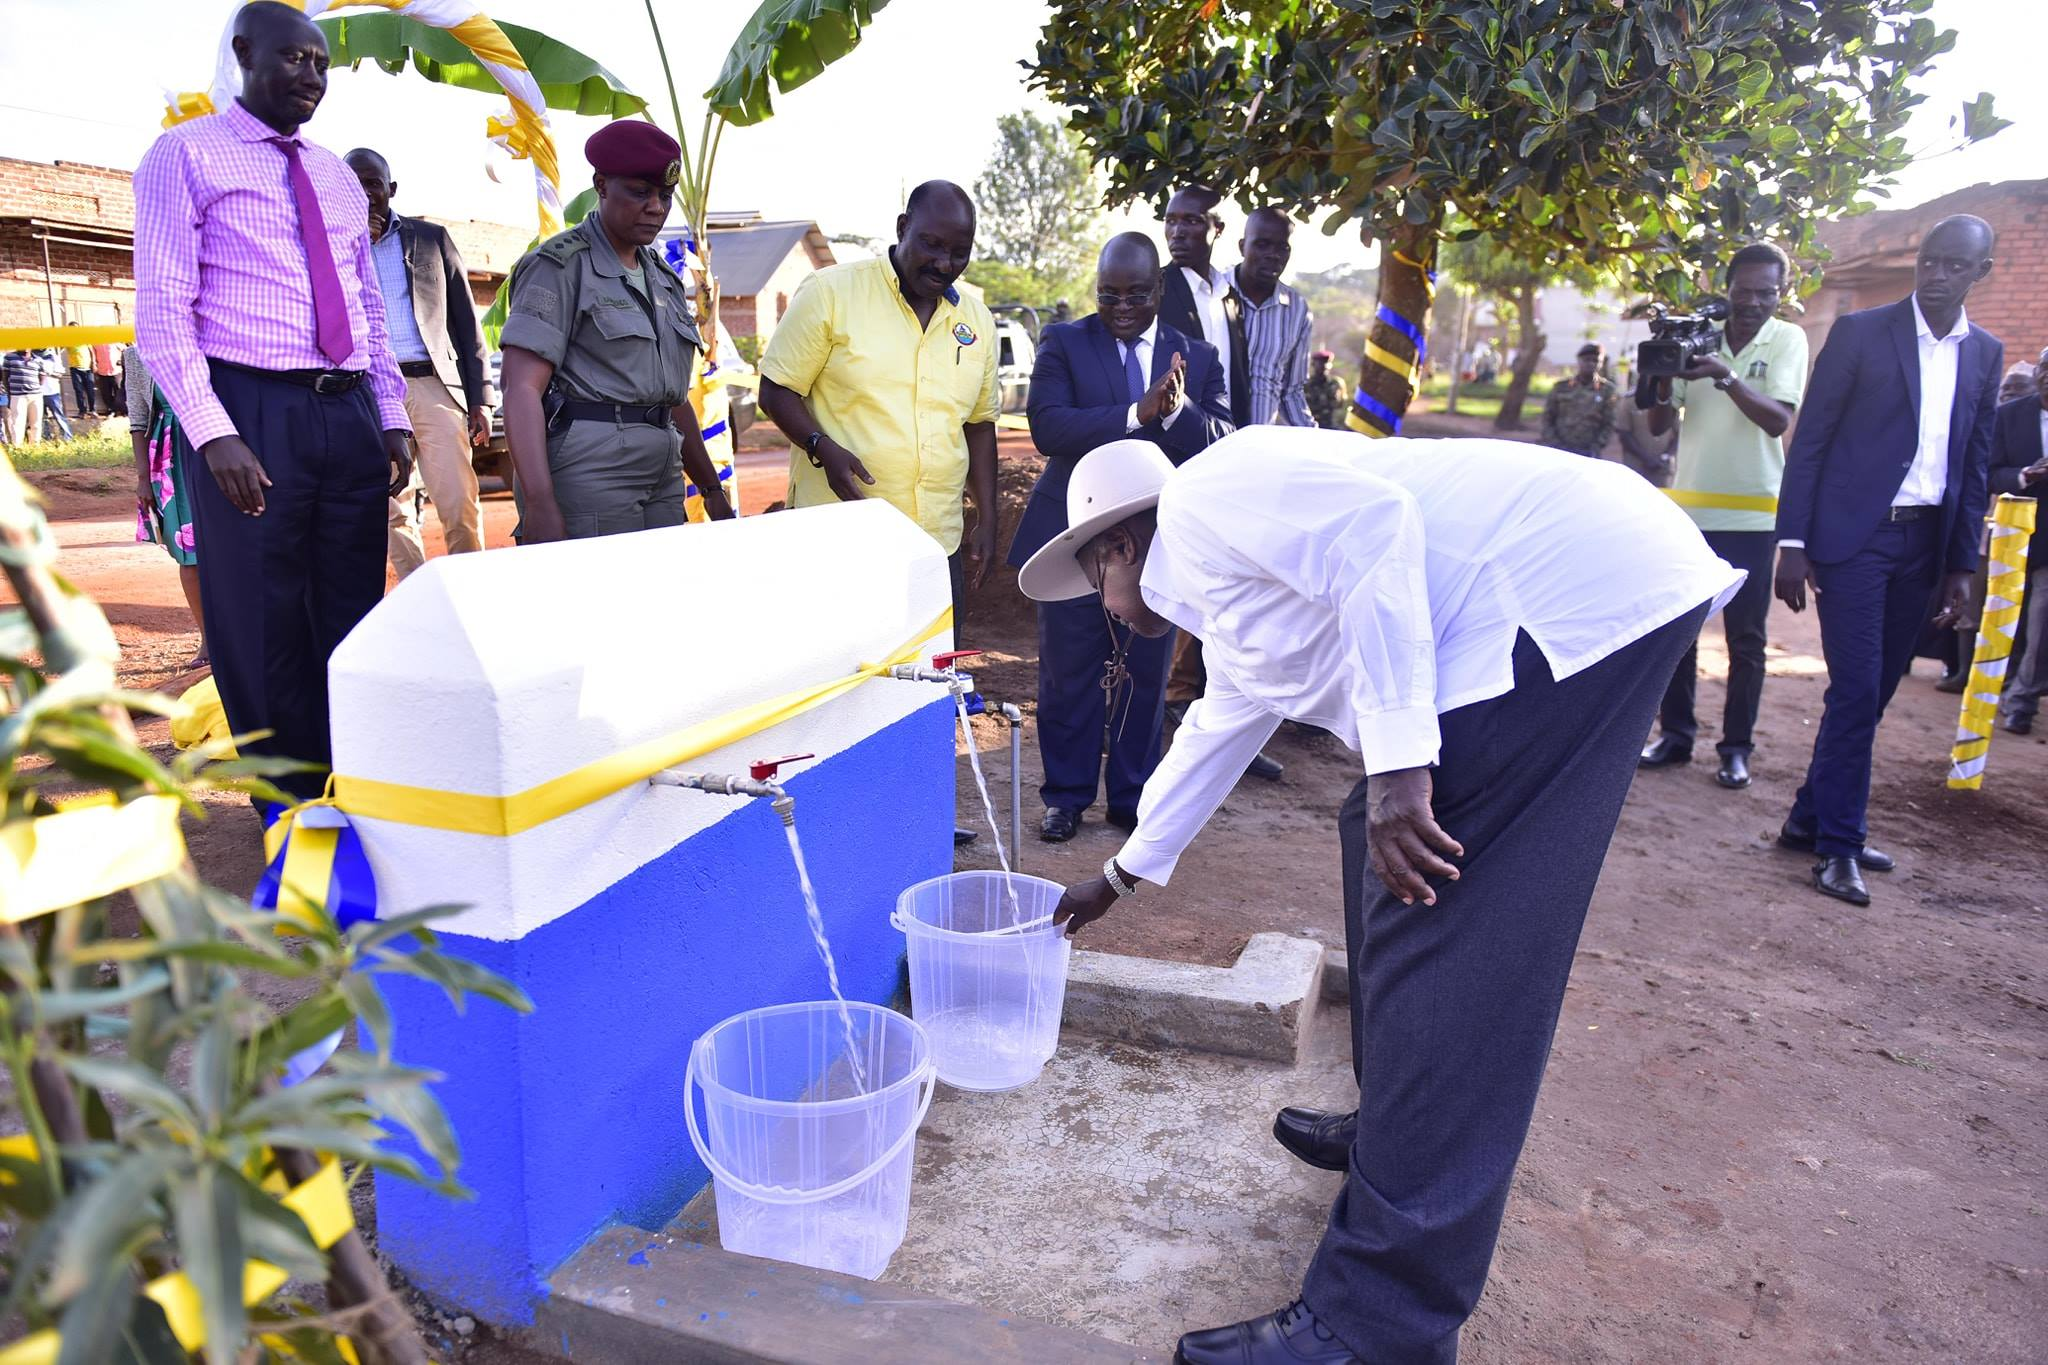 President Museveni commissions one of the 25 taps off the Kasswa-Senya-Bukoto water supply project in Lwengo District (PPU PHOTO)